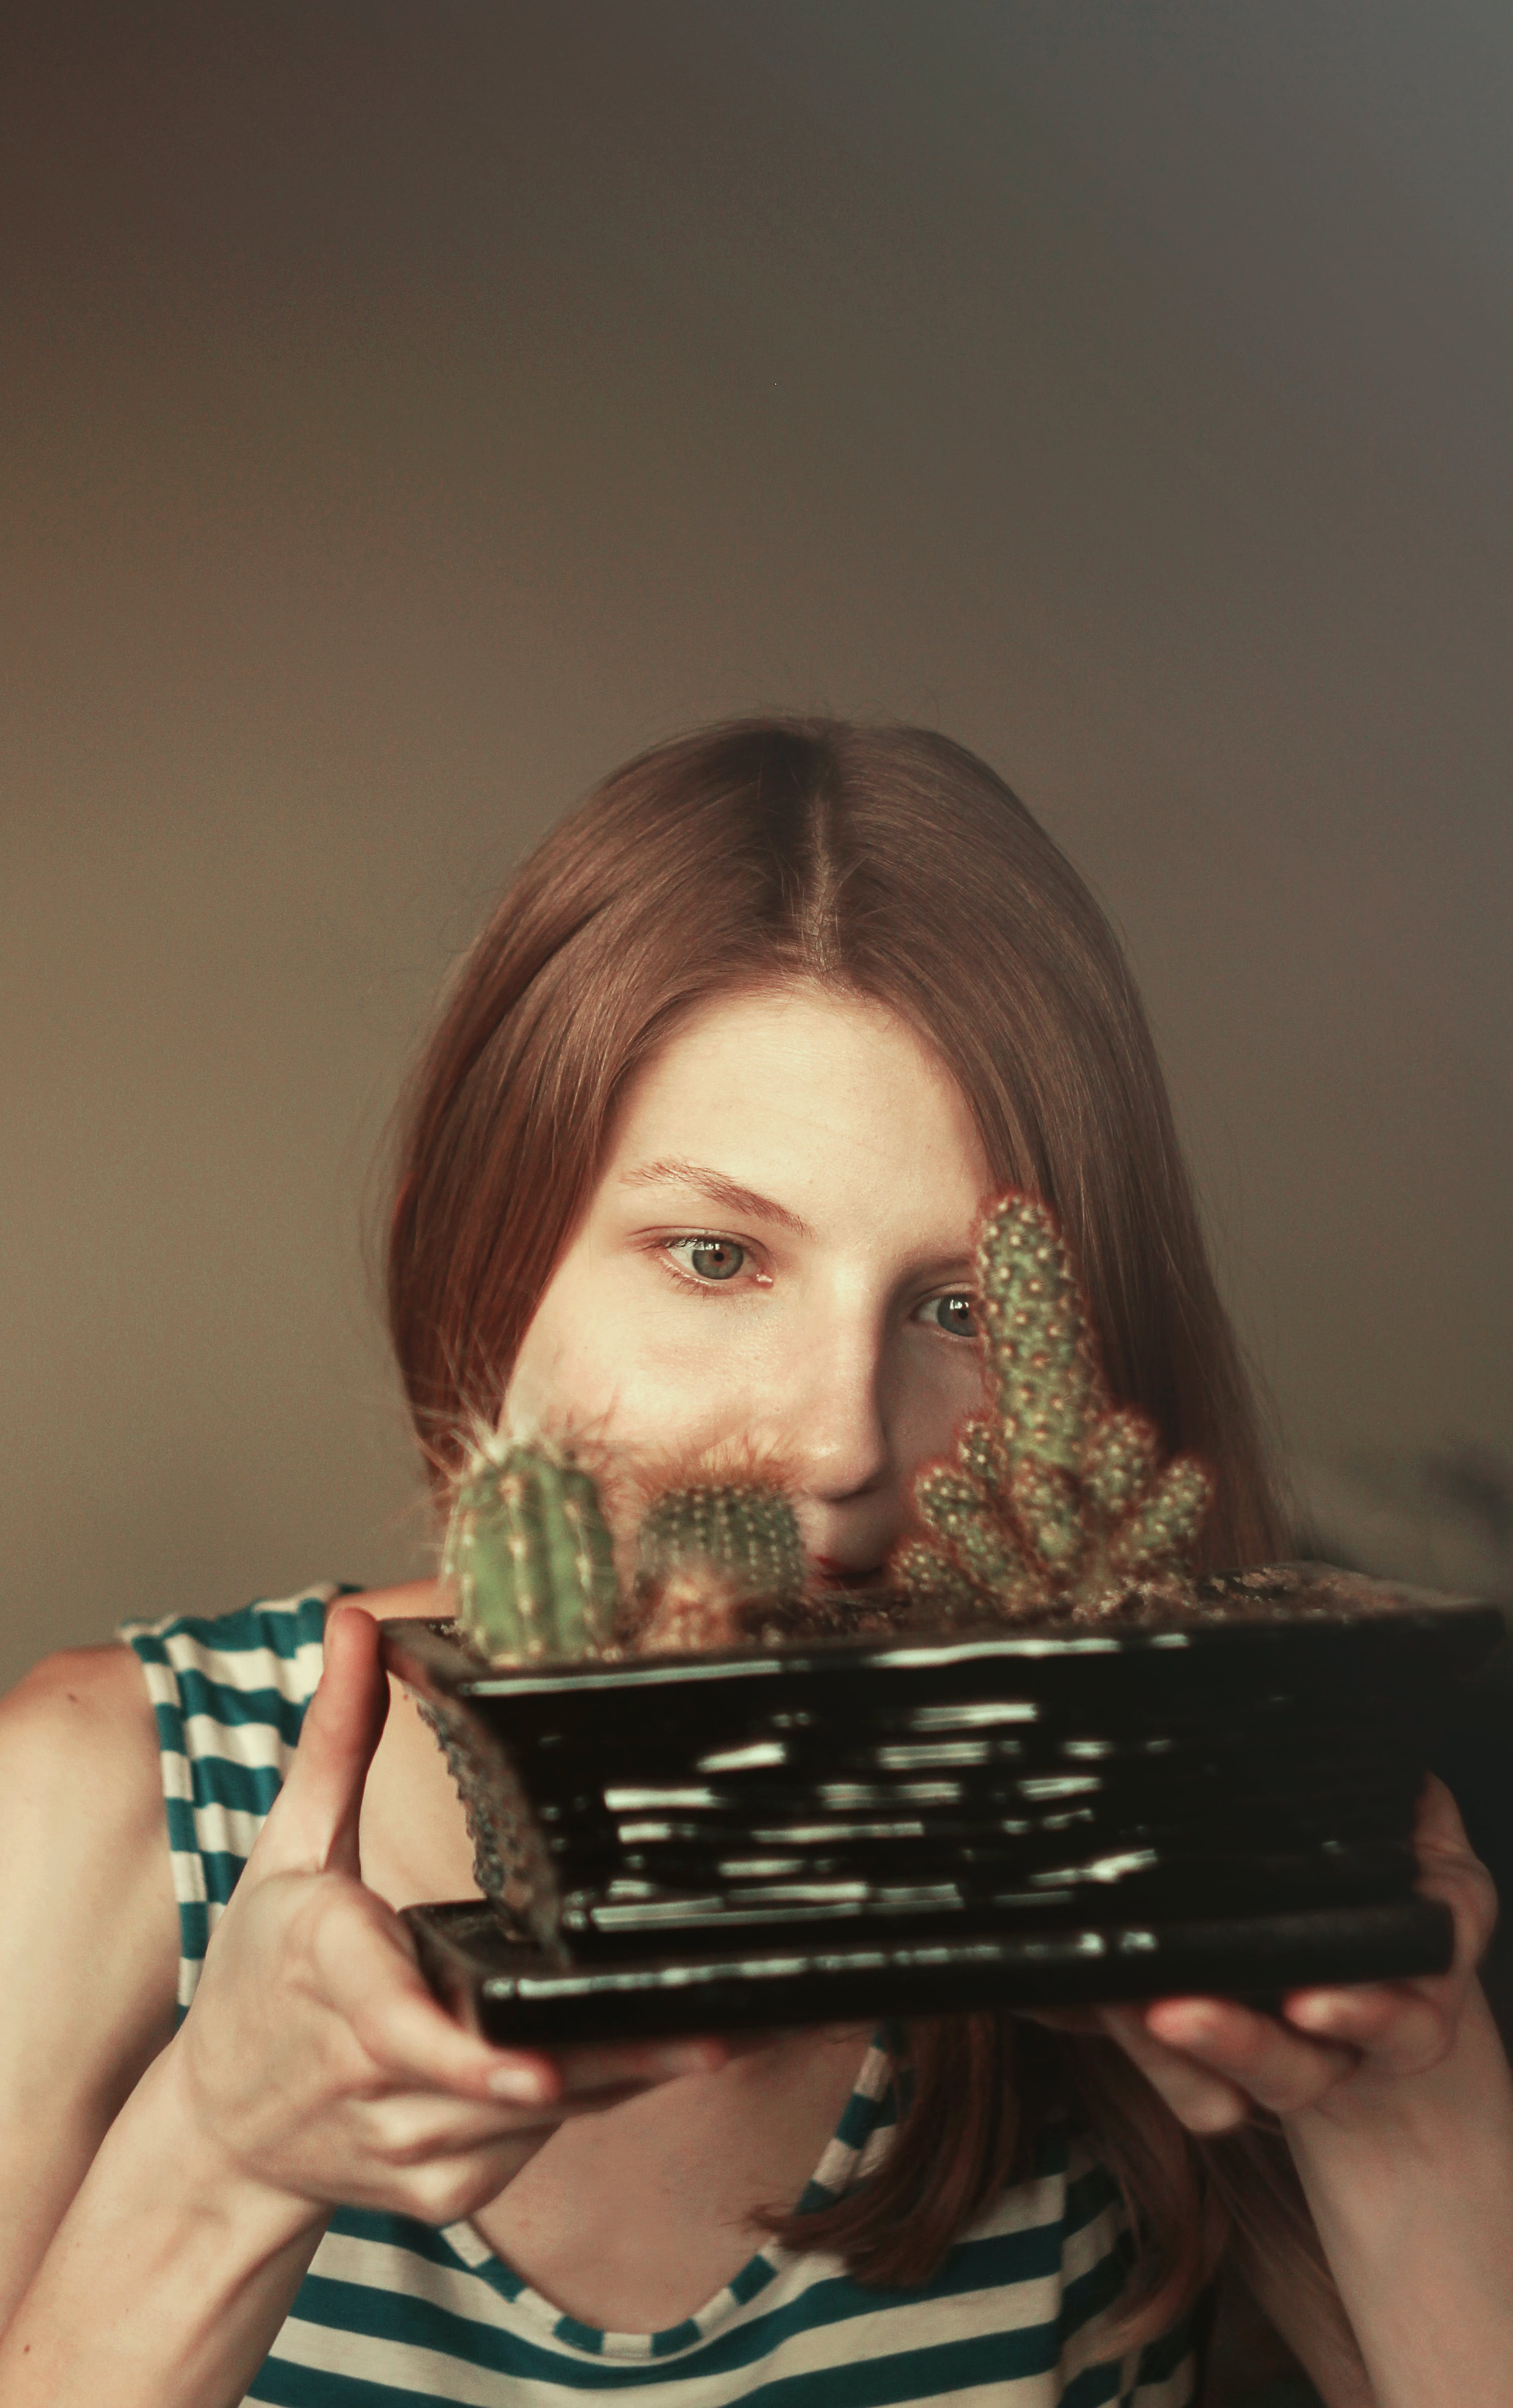 Woman Looking Closely to Cactus on Plant Pot